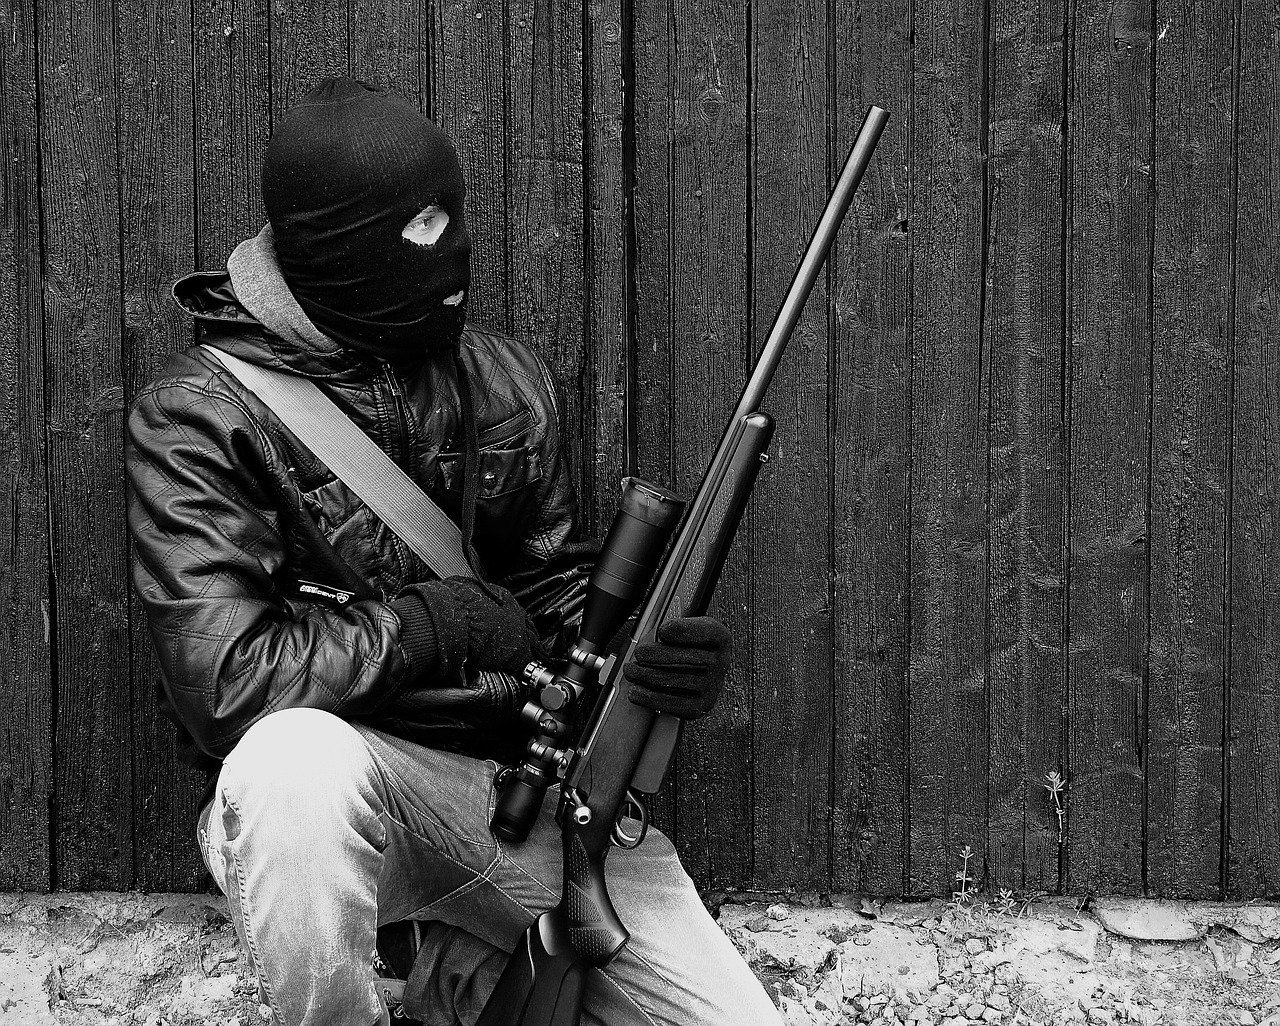 Terrorists still raise money through crypto but the impact is limited